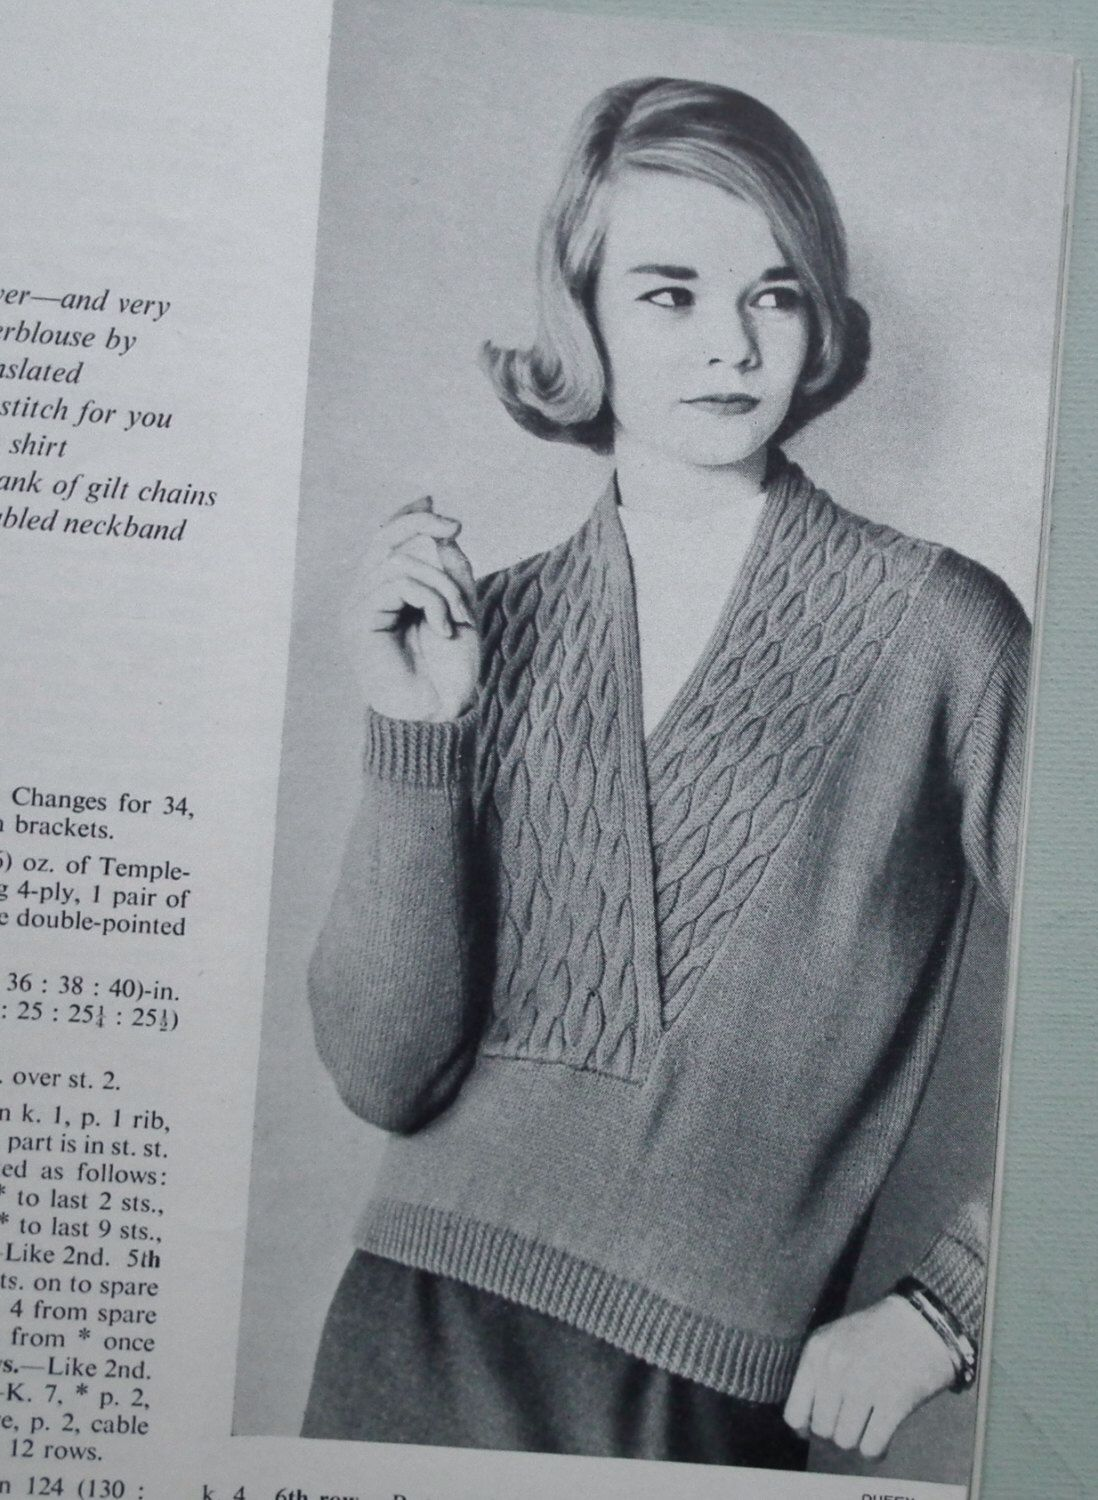 Vogue knitting book no 55 1959 vintage 1950s knitting patterns vogue knitting book no 55 1959 vintage 1950s knitting patterns womens winter jackets jumpers sweaters bankloansurffo Choice Image